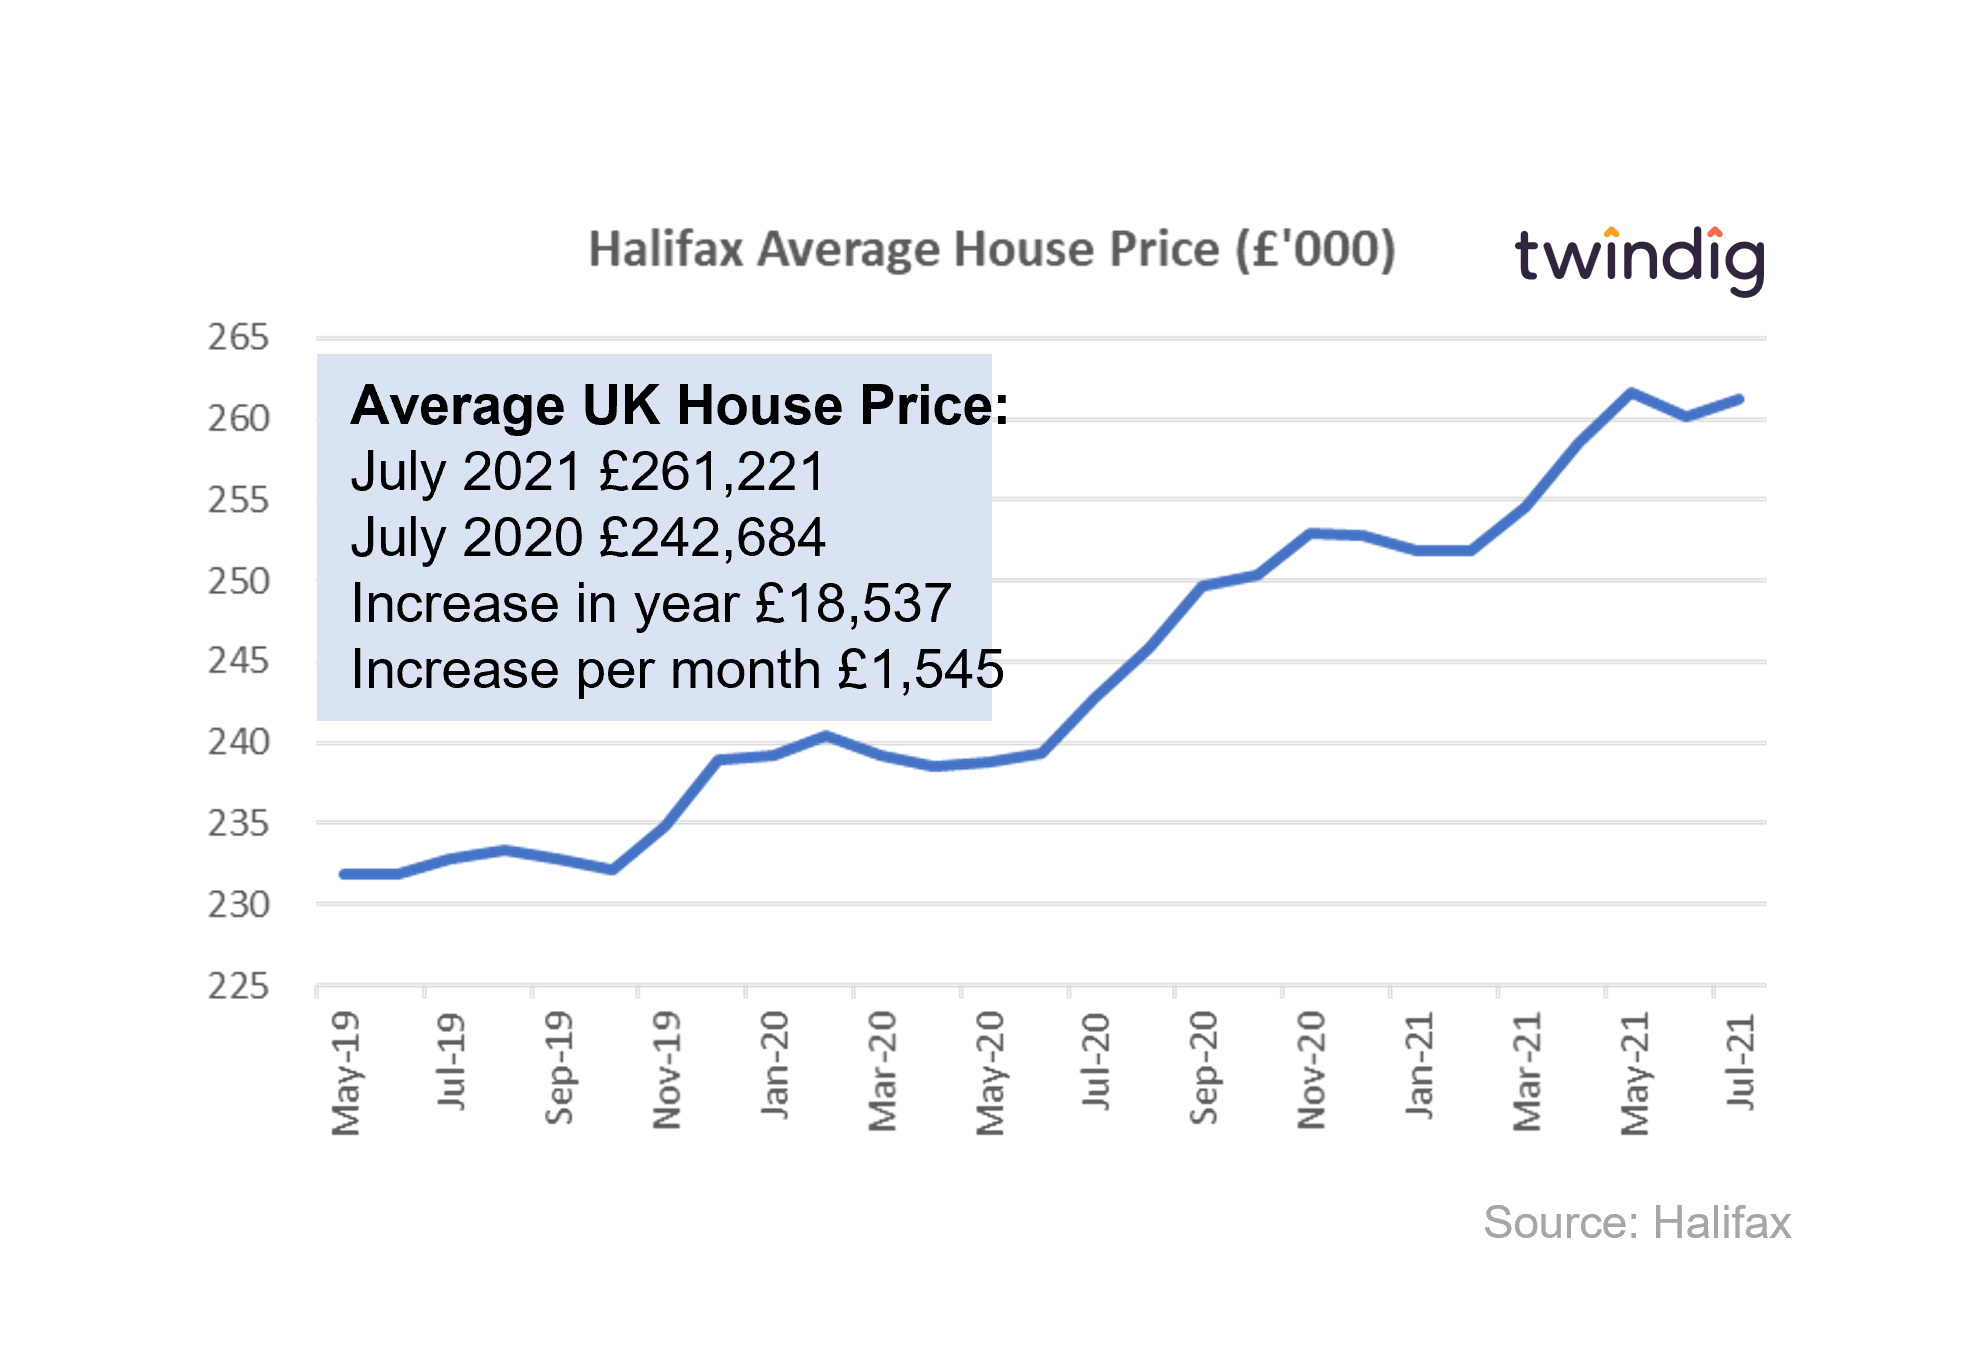 graph chart Halifax house price index july 2021 twindig anthony codling